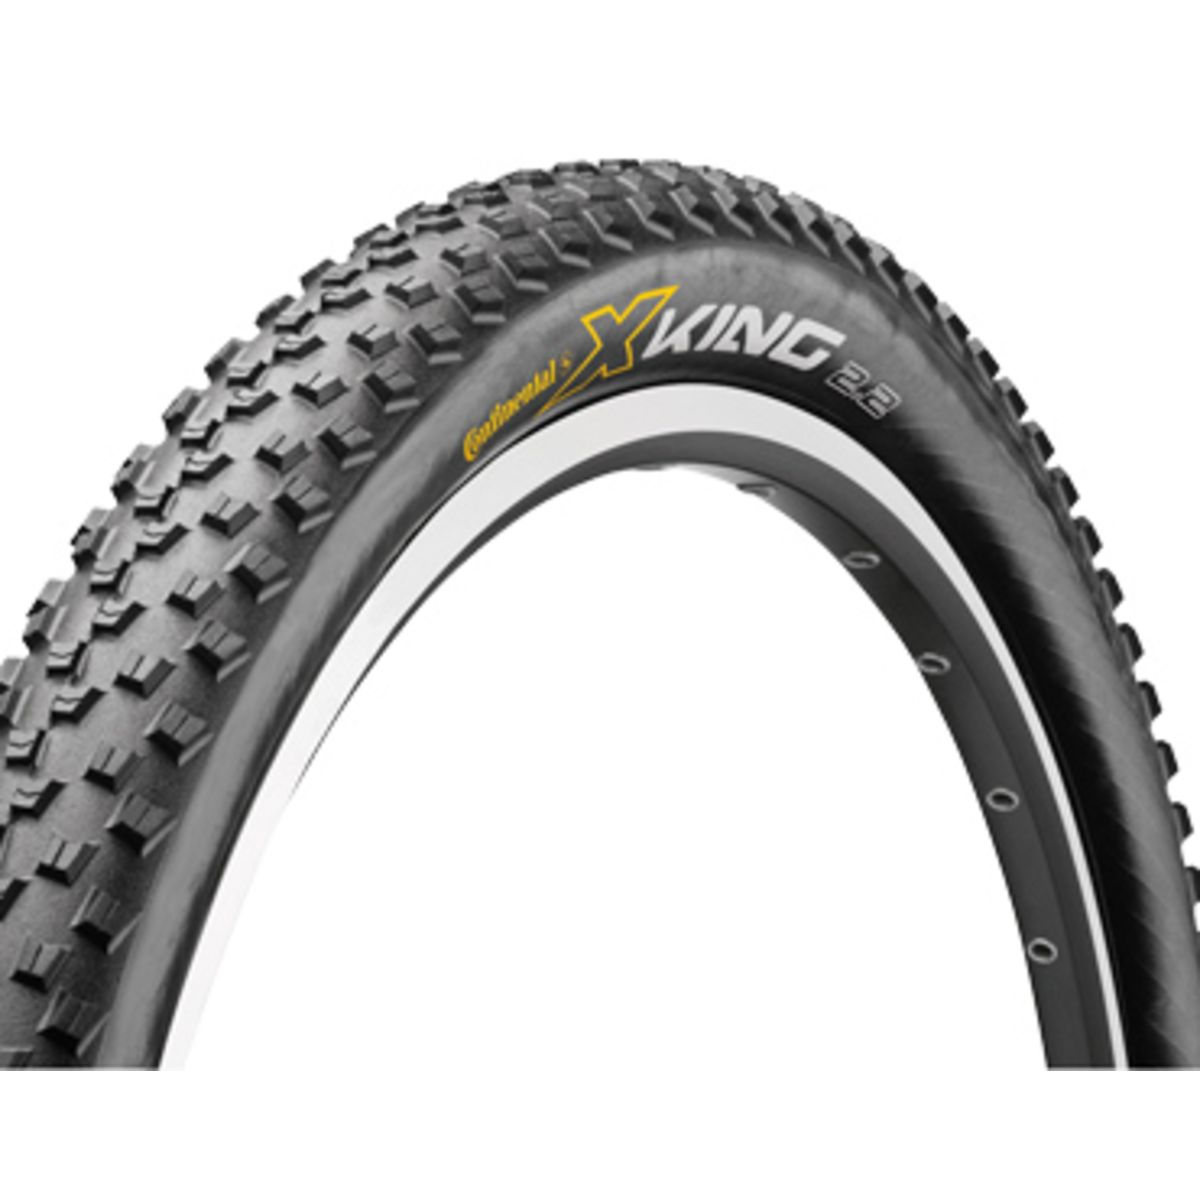 X-King Performance MTB tyre, clincher